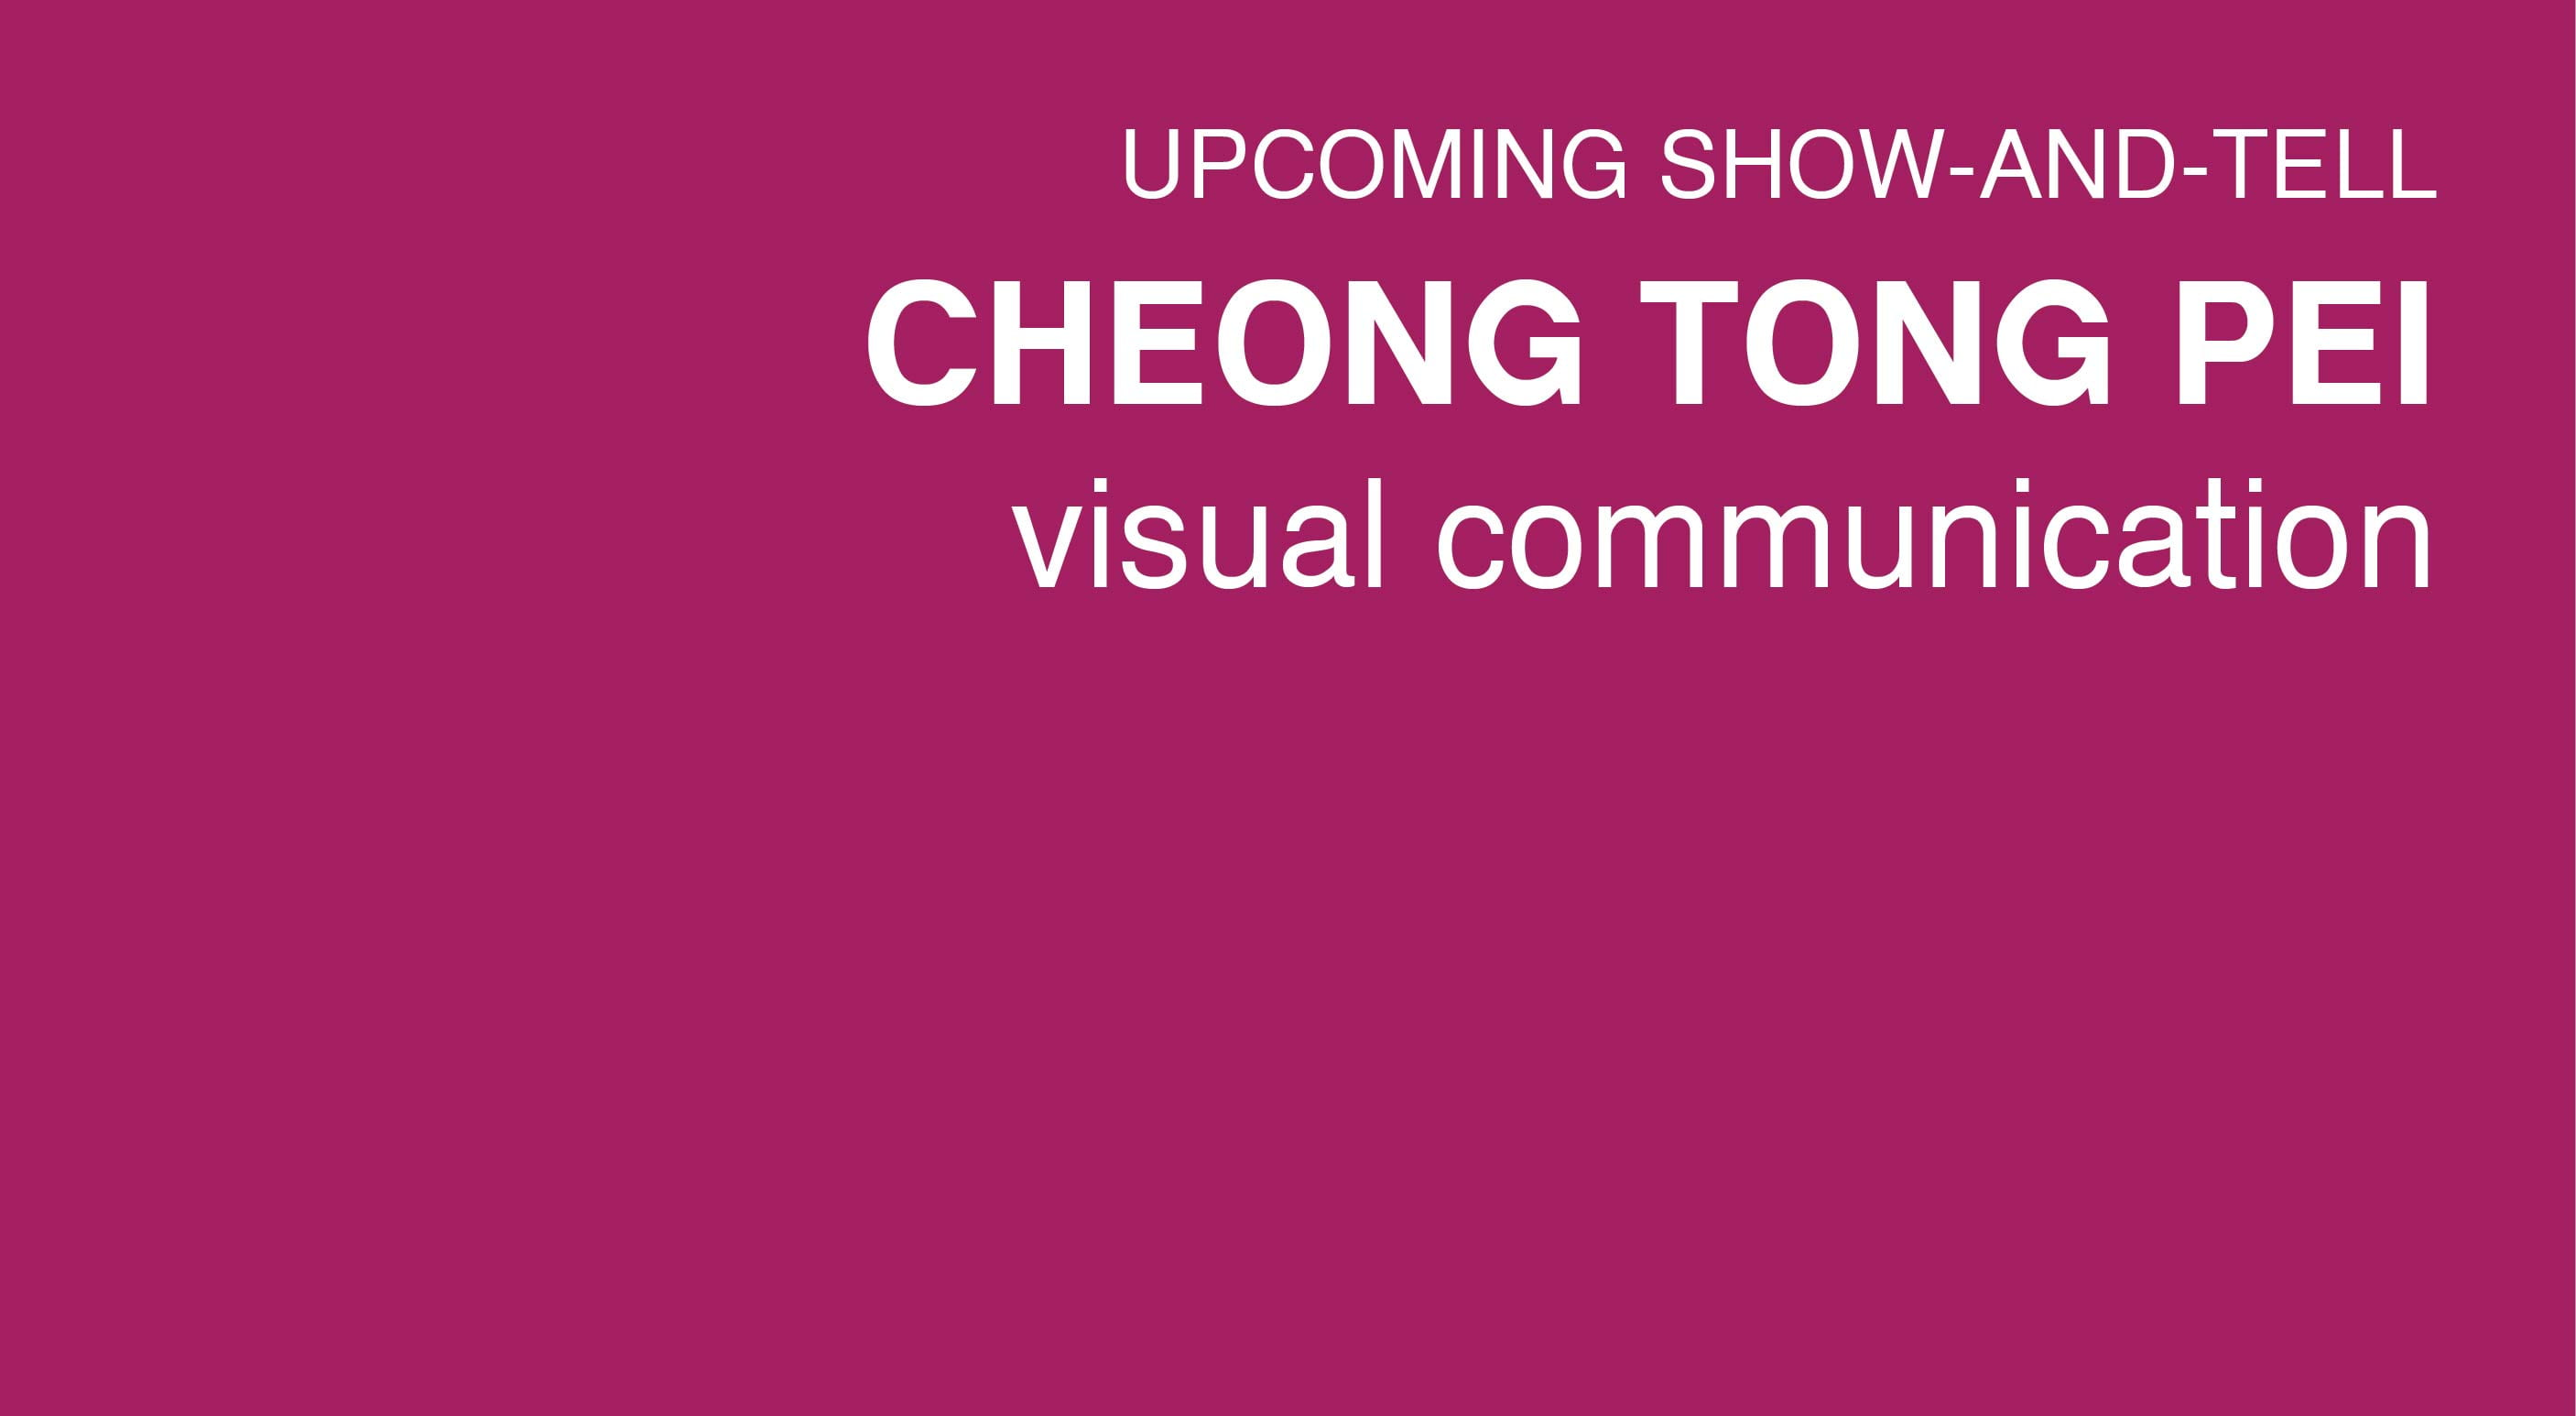 Show-and-tell by Cheong Tong Pei